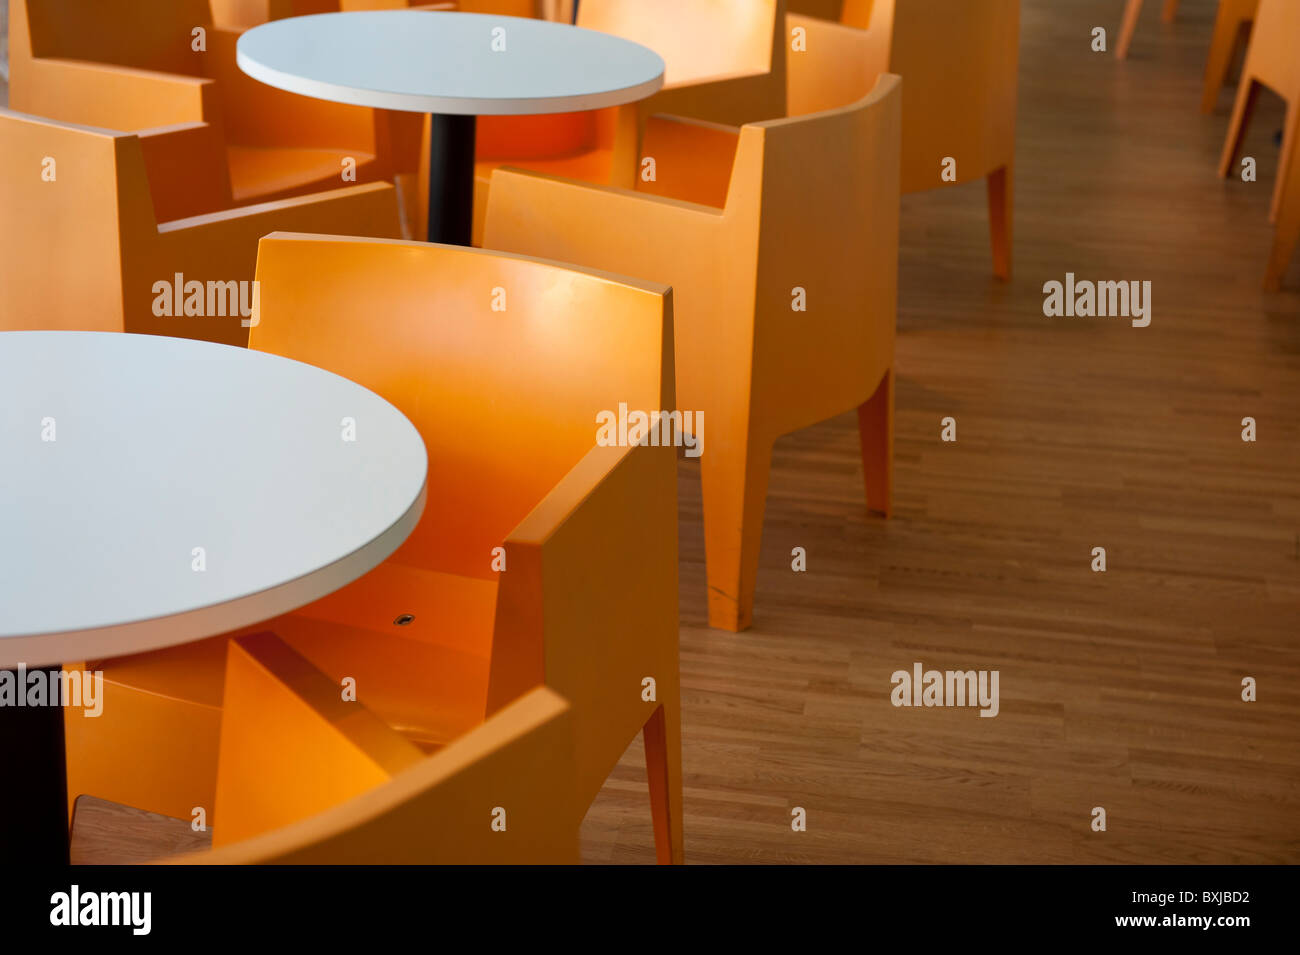 orange plastic polypropylene philippe starck toy chairs in a cafe